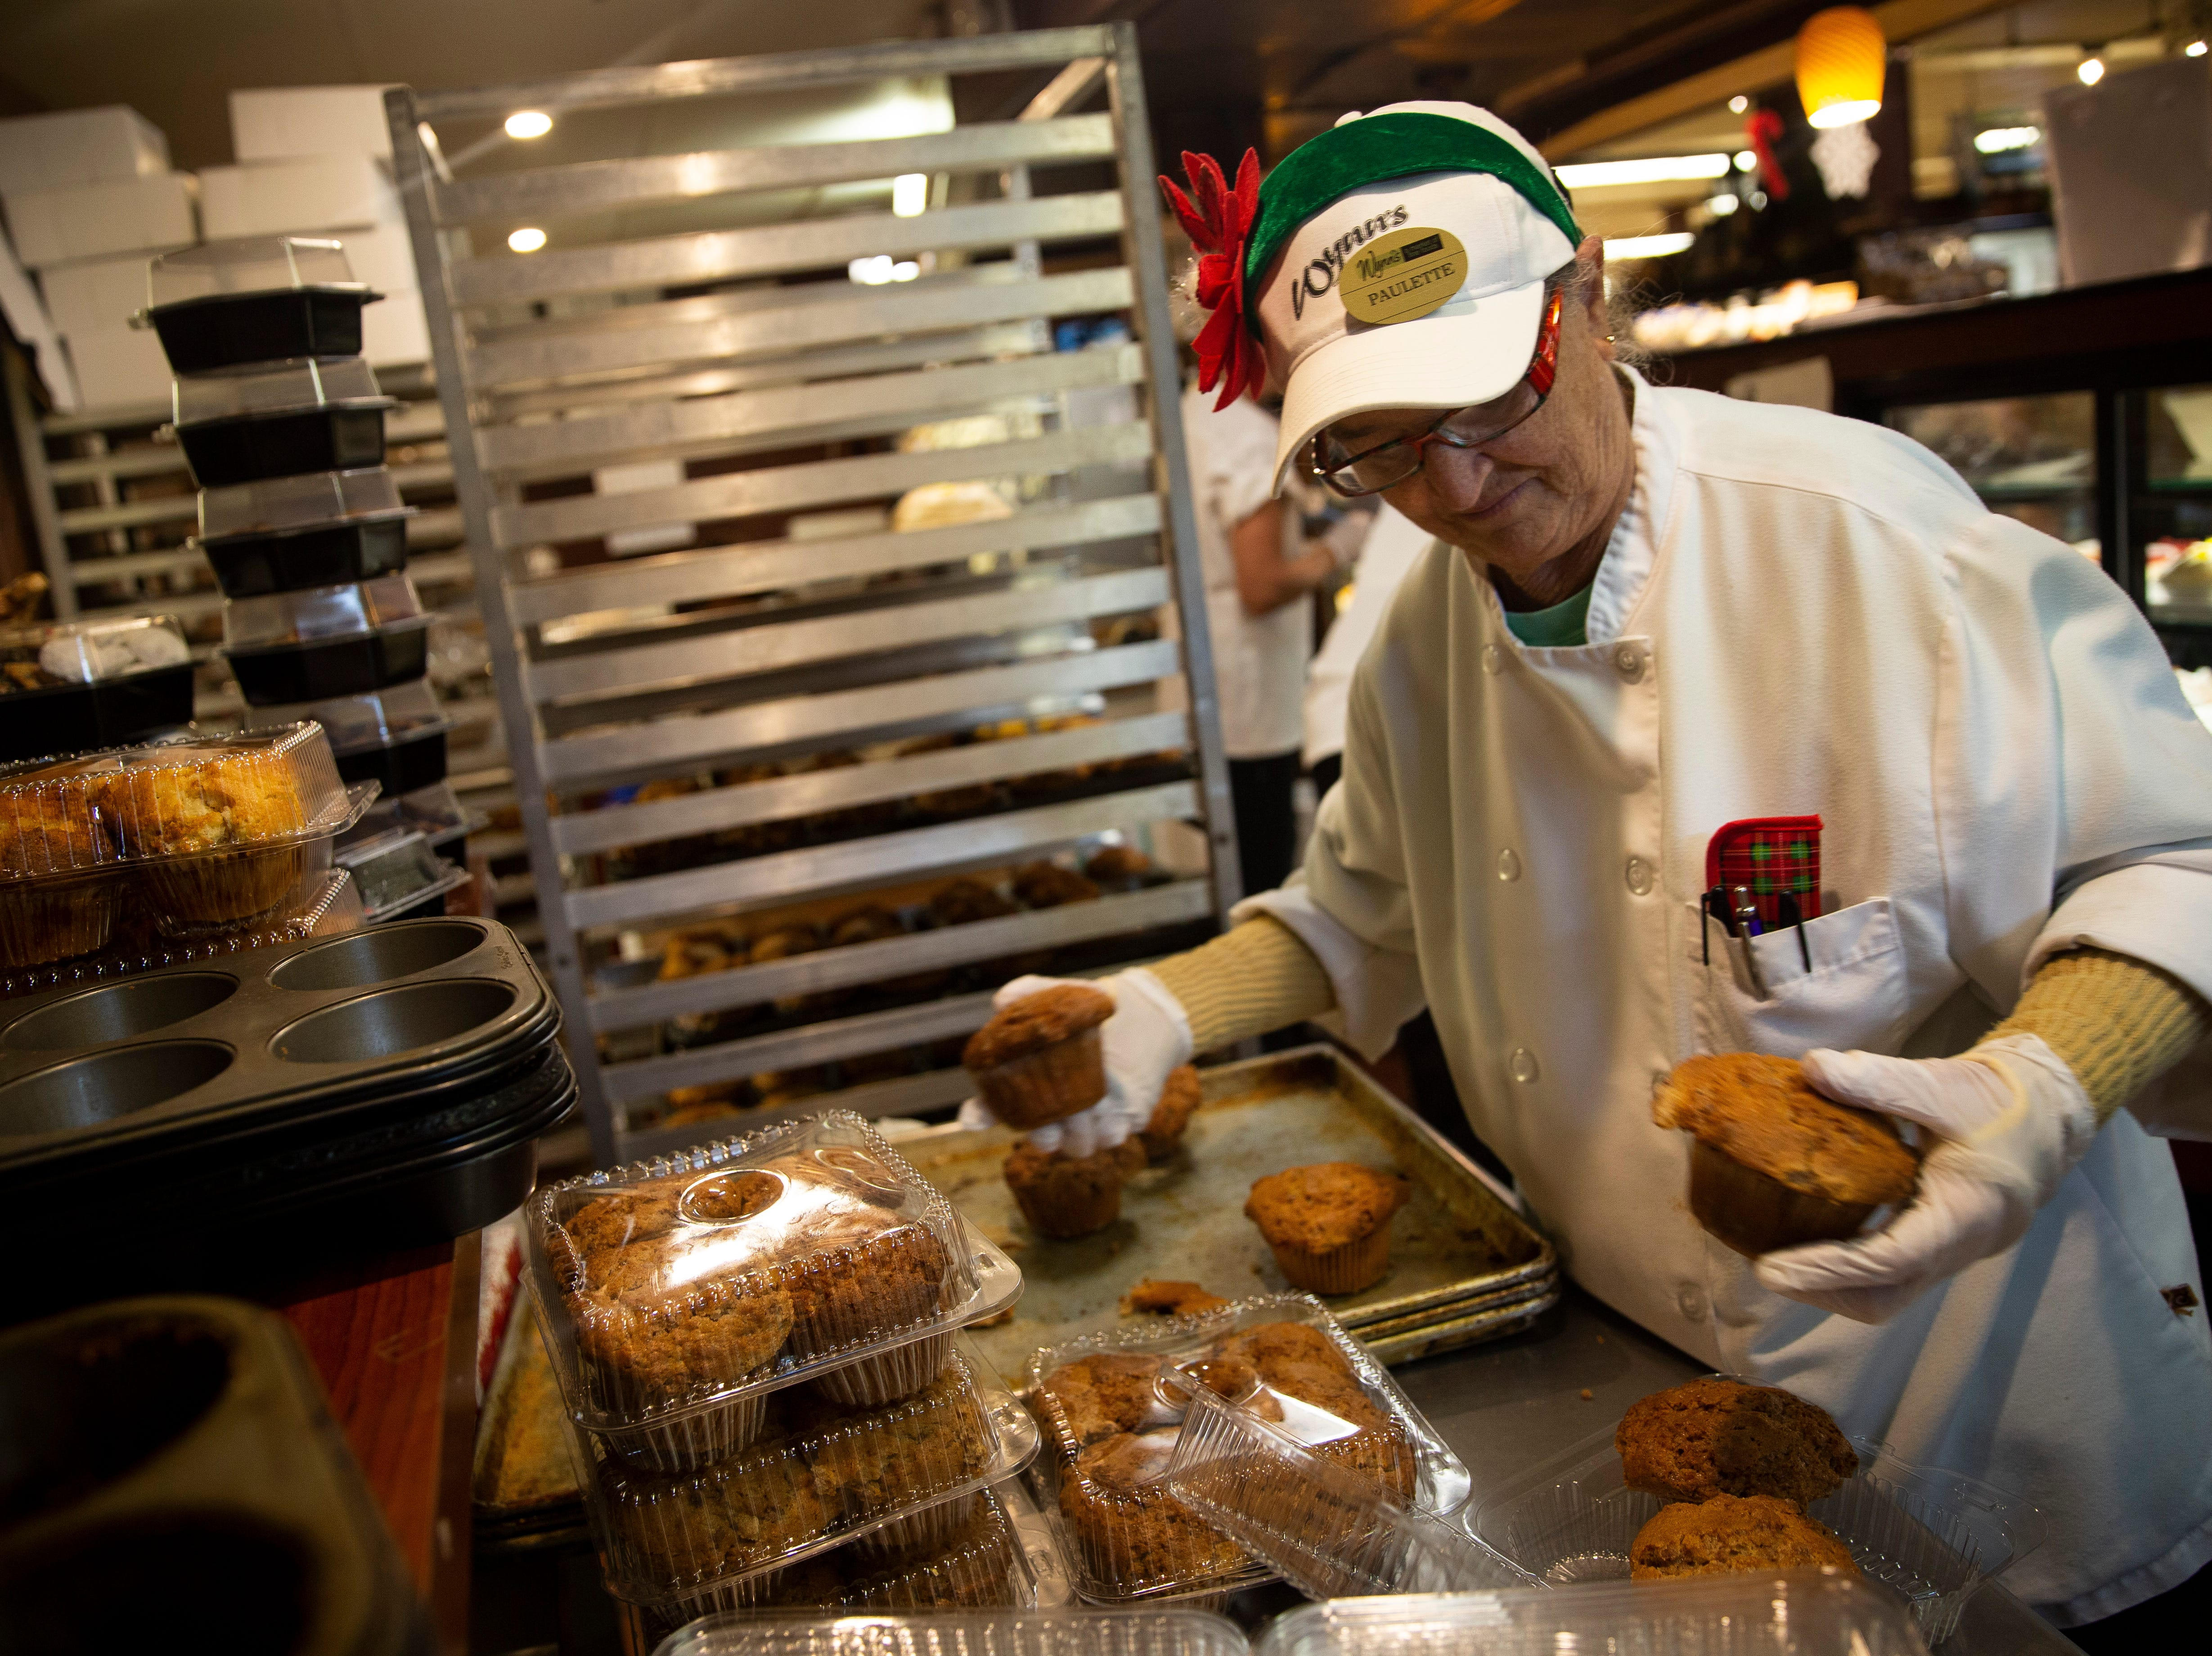 Paulette Dickerson packs cinnamon muffins into containers on Friday, Dec. 21, 2018, at Wynn's Market in Naples. Wynn's Market is celebrating 80 years in business this year.